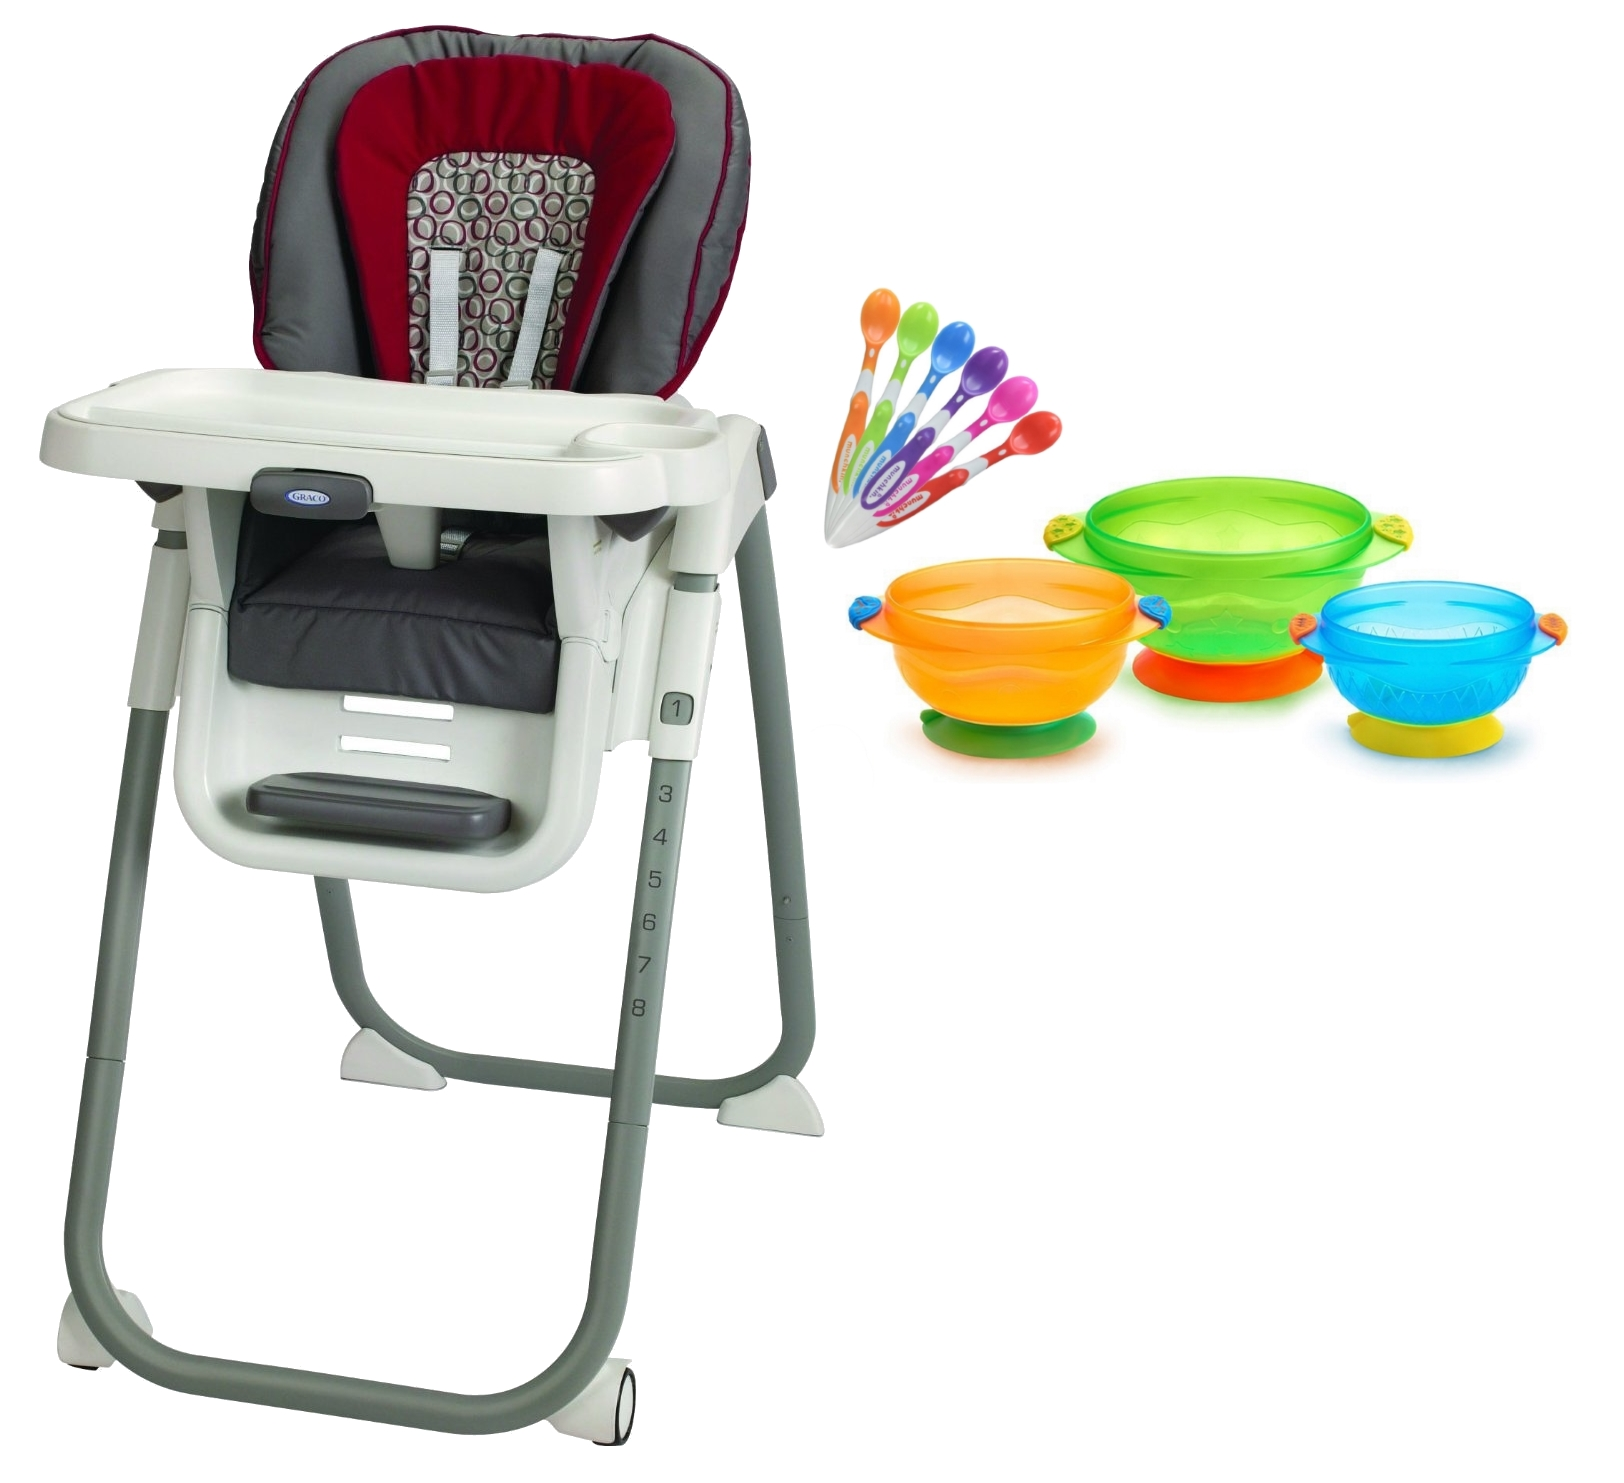 Graco TableFit Highchair with Infant Spoons & Suction Feeding Bowls, Finley by Graco